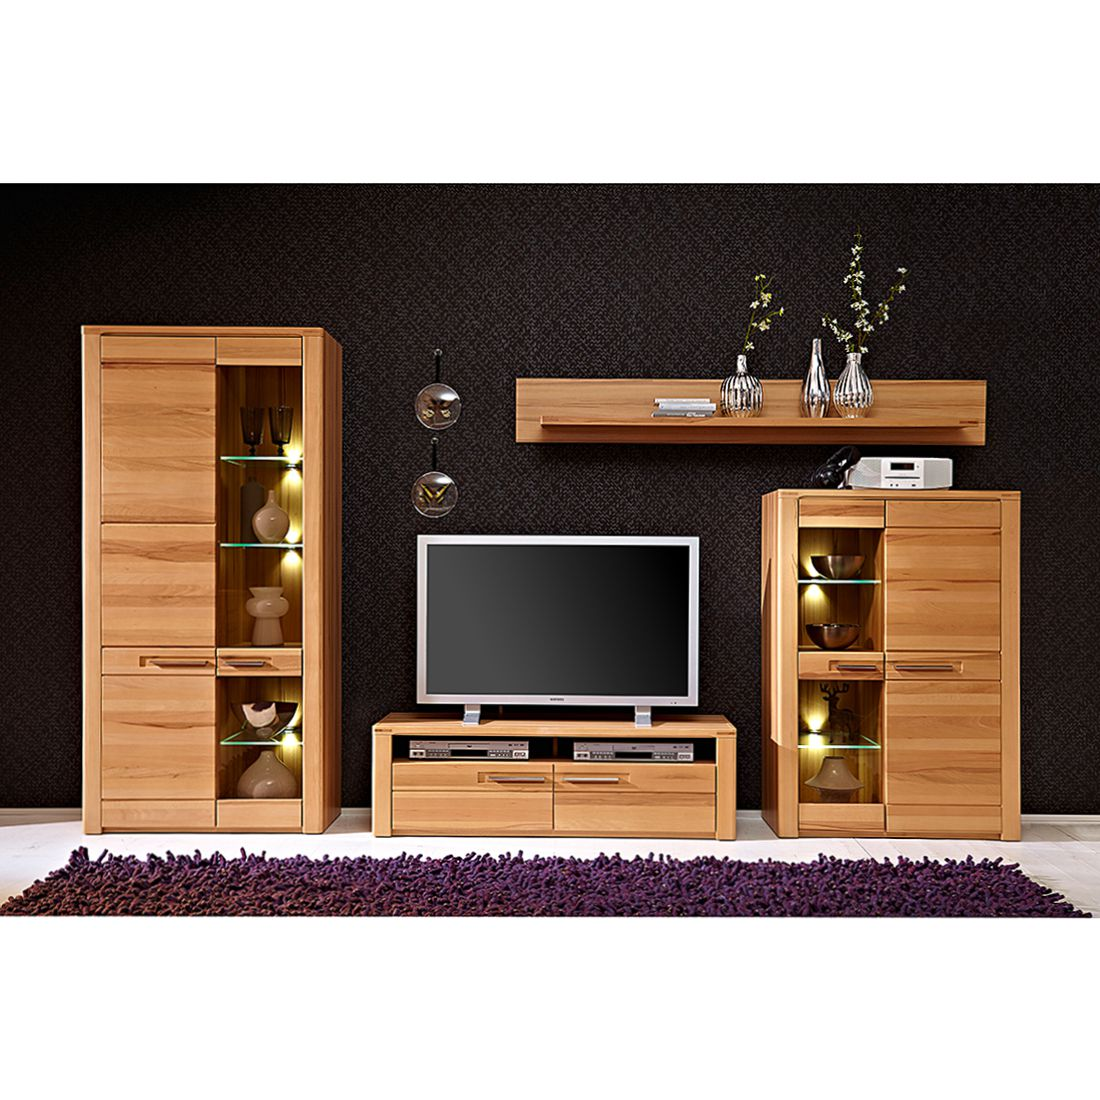 wohnwand naturestar i 4 teilig kernbuche teilmassiv. Black Bedroom Furniture Sets. Home Design Ideas